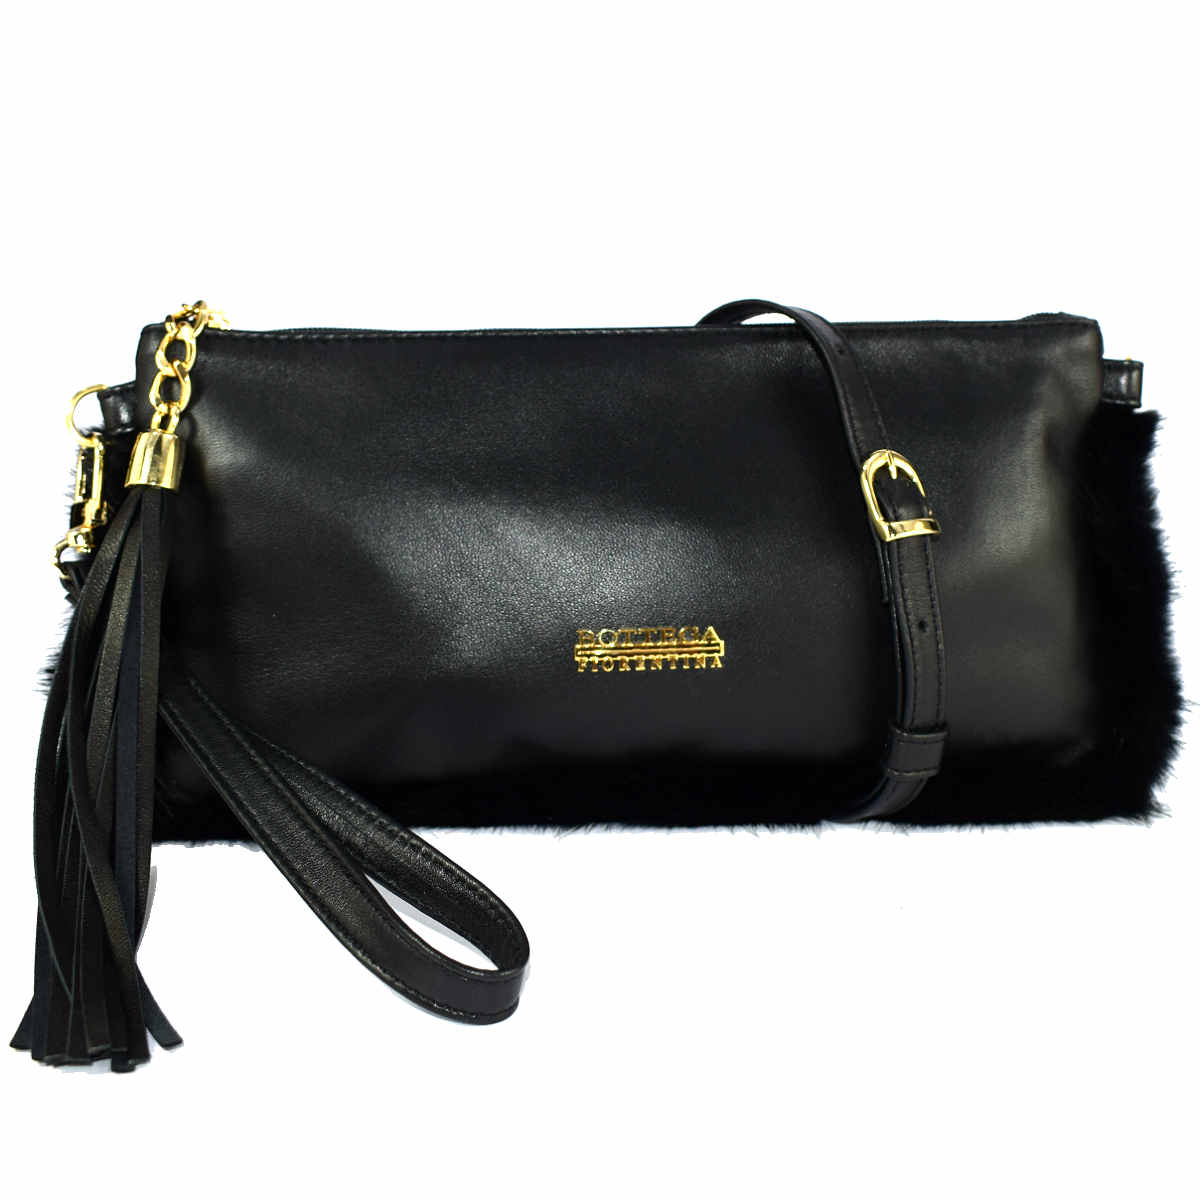 1708 BAG WITH HANDLE AND SHOULDER by Bottega Fiorentina